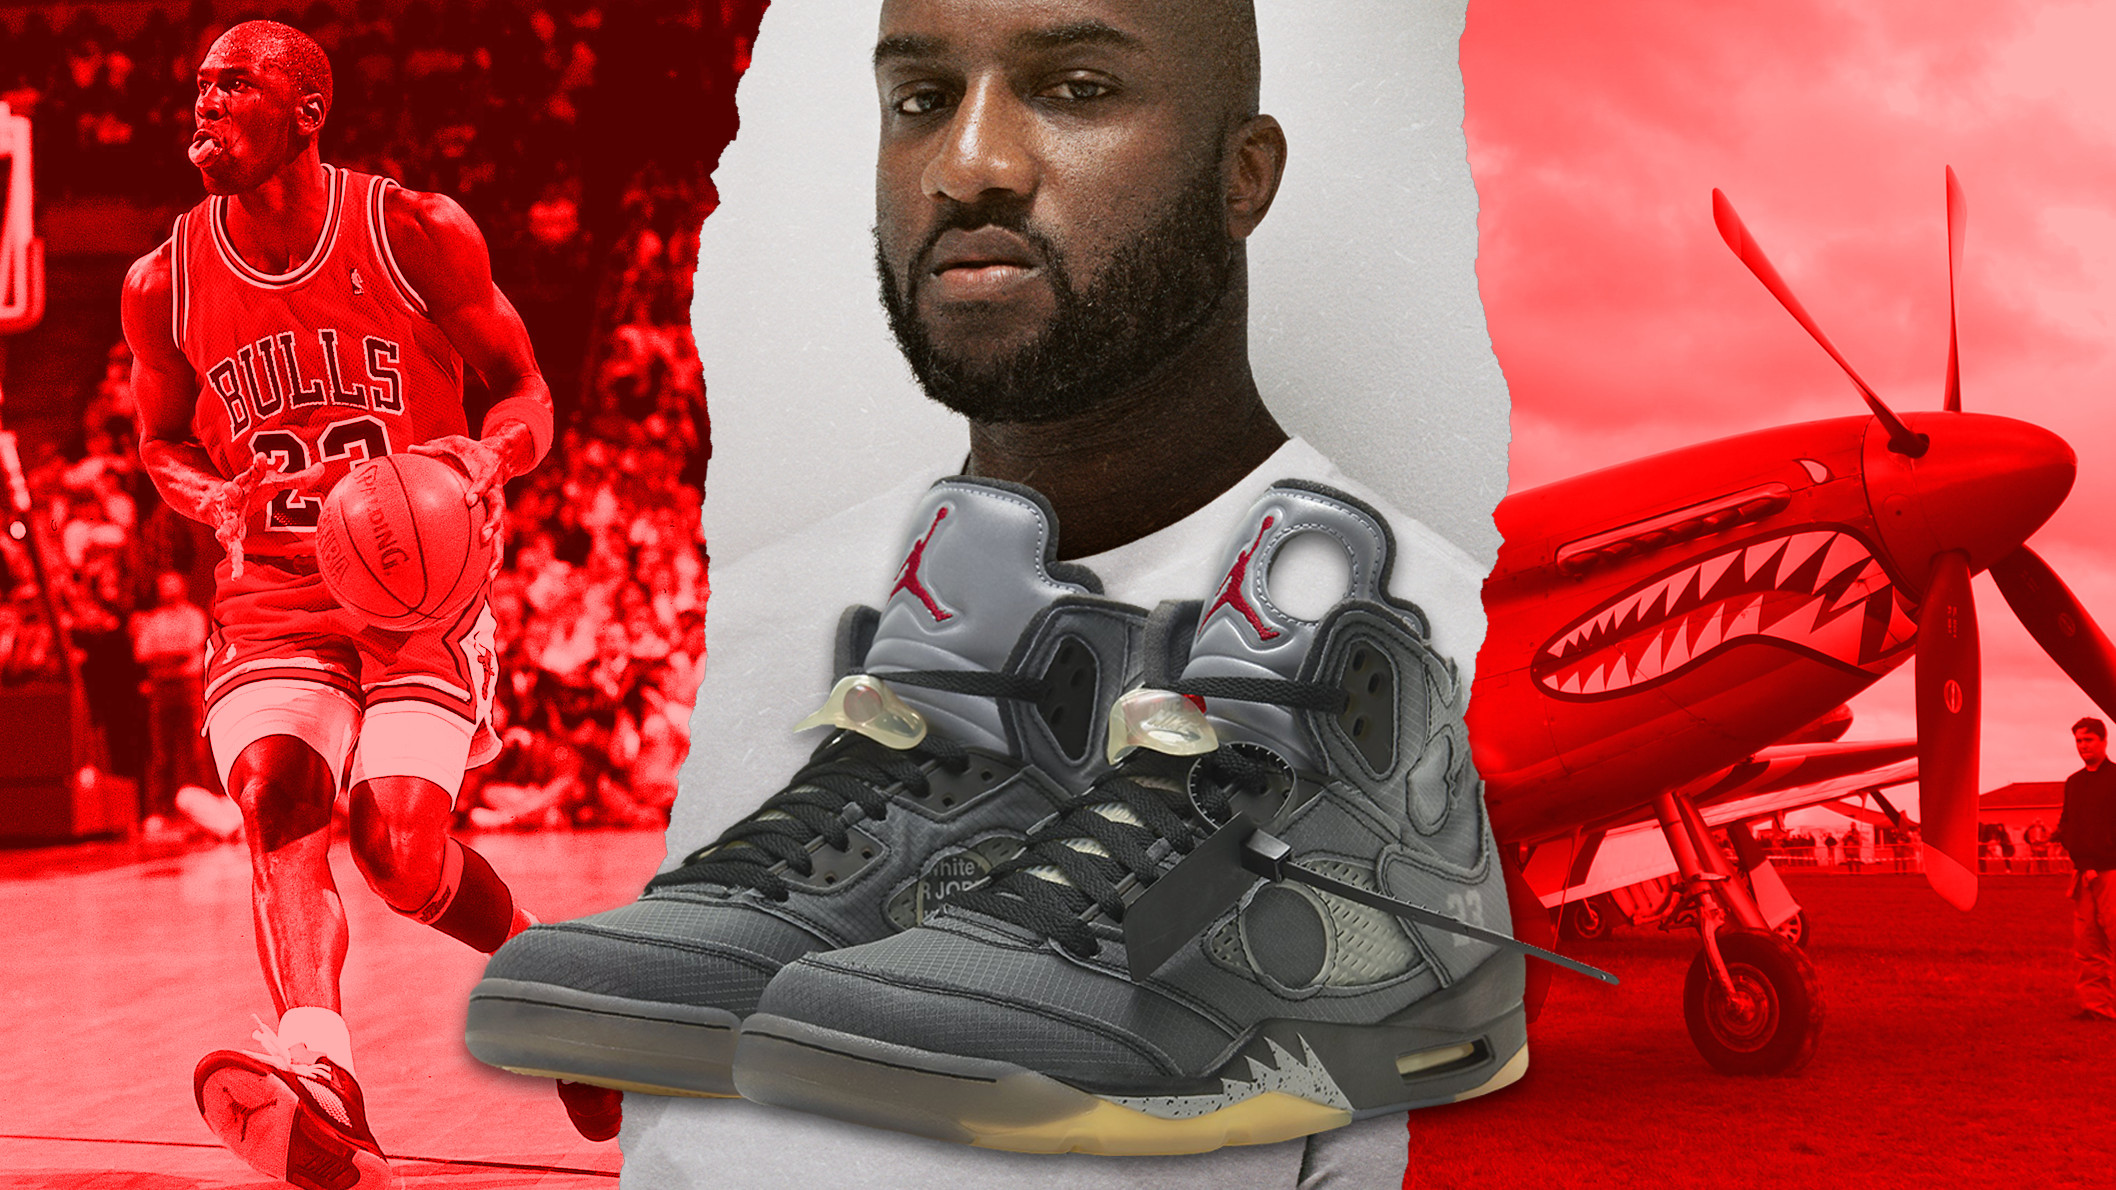 Virgil Abloh's Off-White x Air Jordan V Isn't Just a Hyped Sneaker Collab, It's a History Lesson